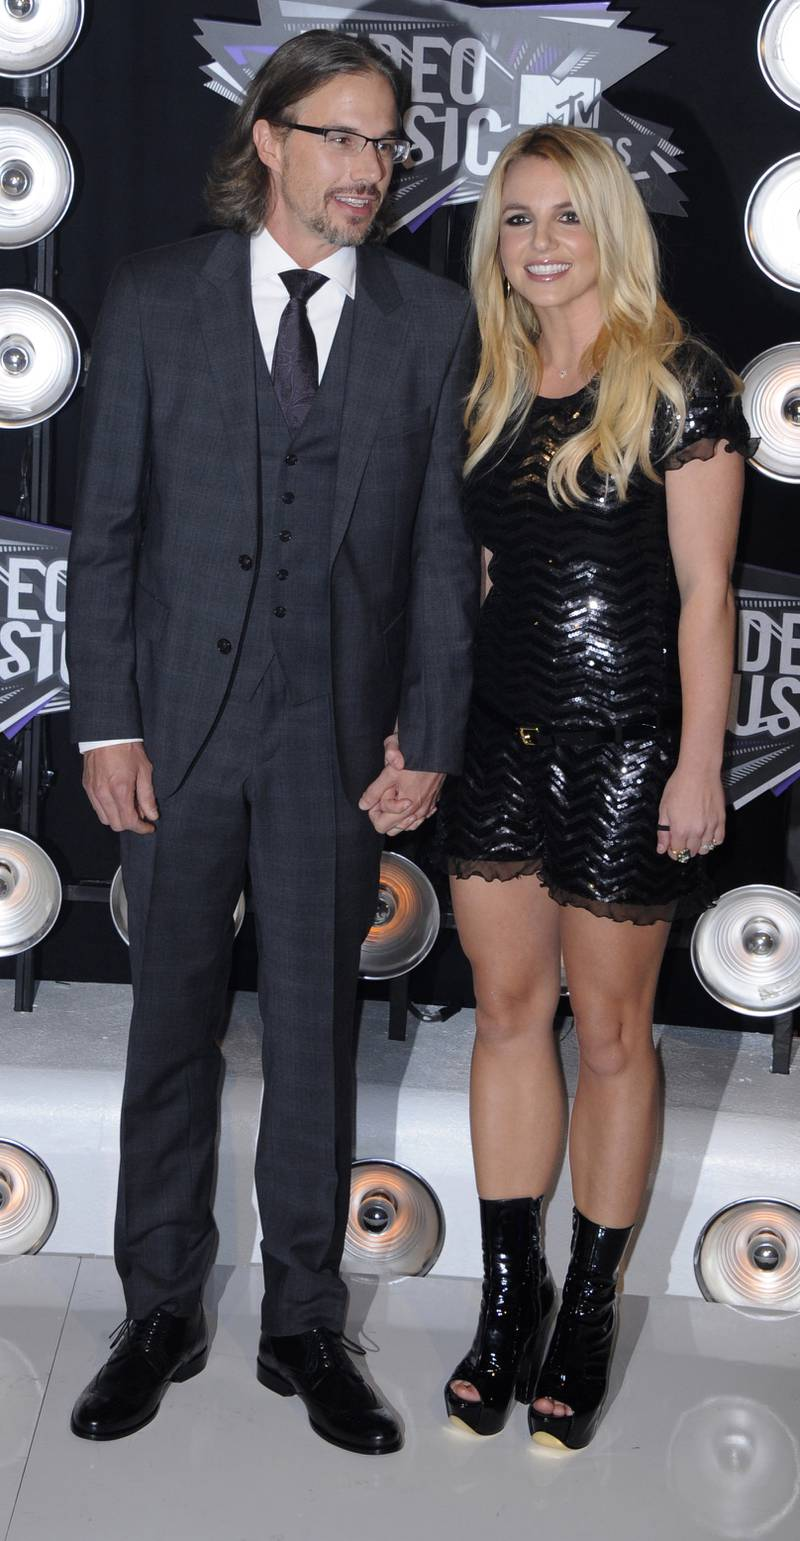 epa02886404 US singer Britney Spears (R) arrives with boyfriend Jason Trawick (L) for the MTV Video Music Awards 2011 at the Nokia Theatre in Los Angeles, California, USA, 28 August 2011.  EPA/PAUL BUCK